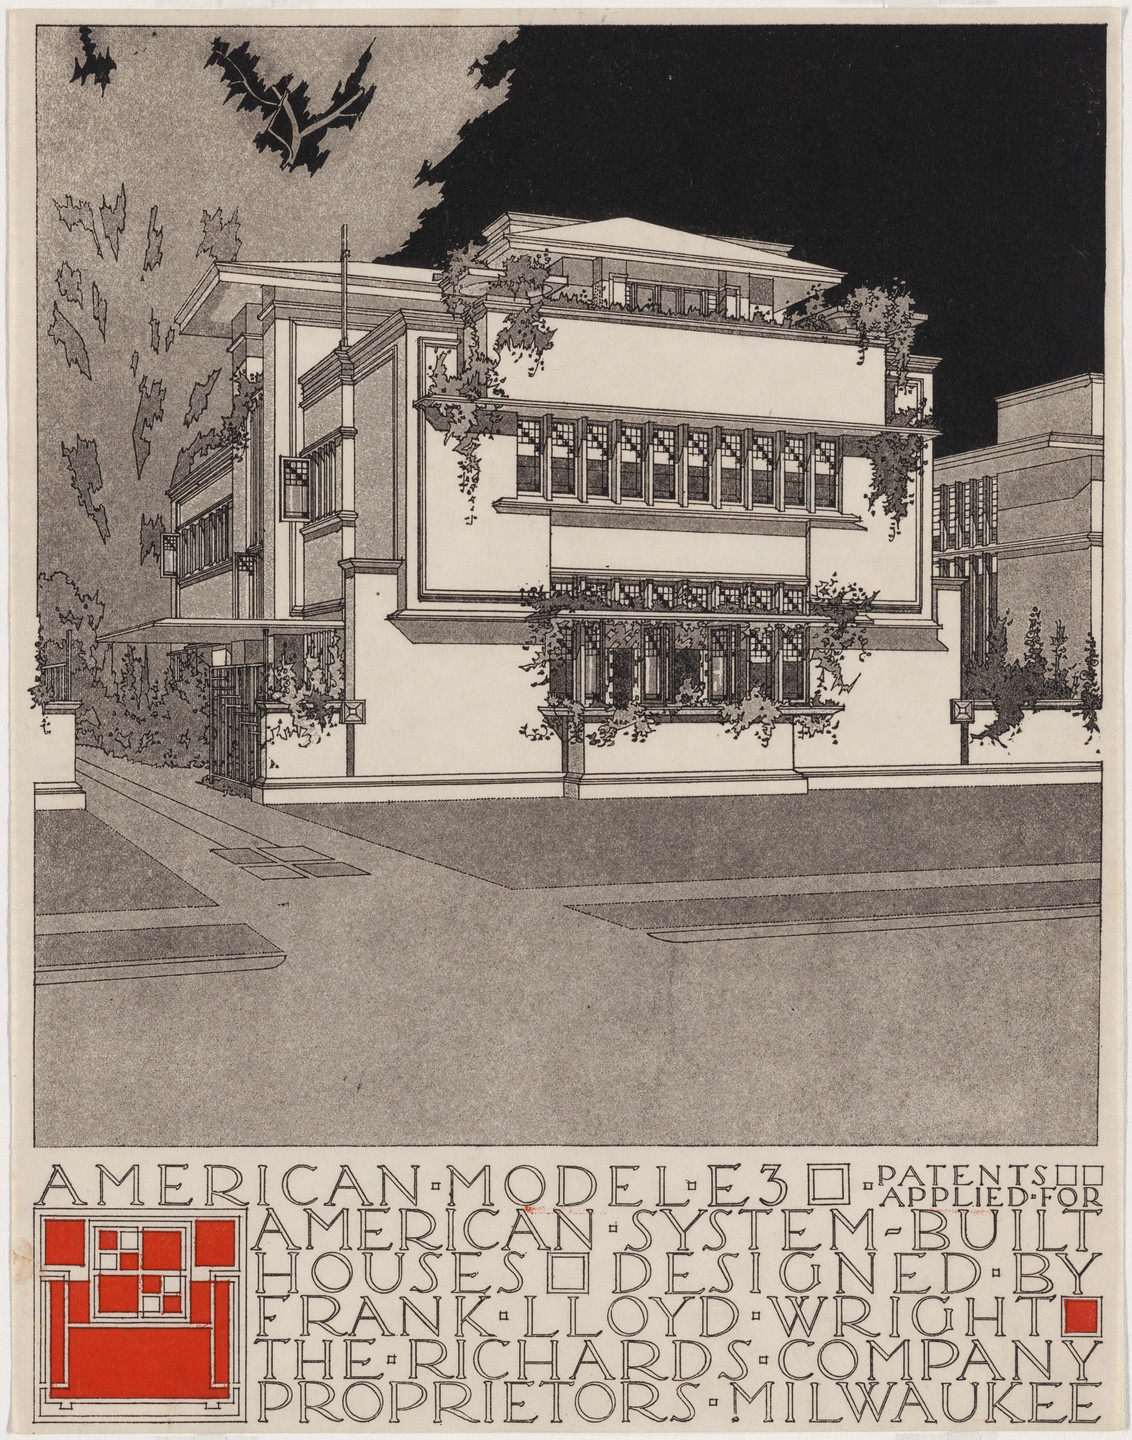 Frank Lloyd Wright. American System-Built Houses for The Richards Company project (Exterior perspective of model E3). 1915–1917